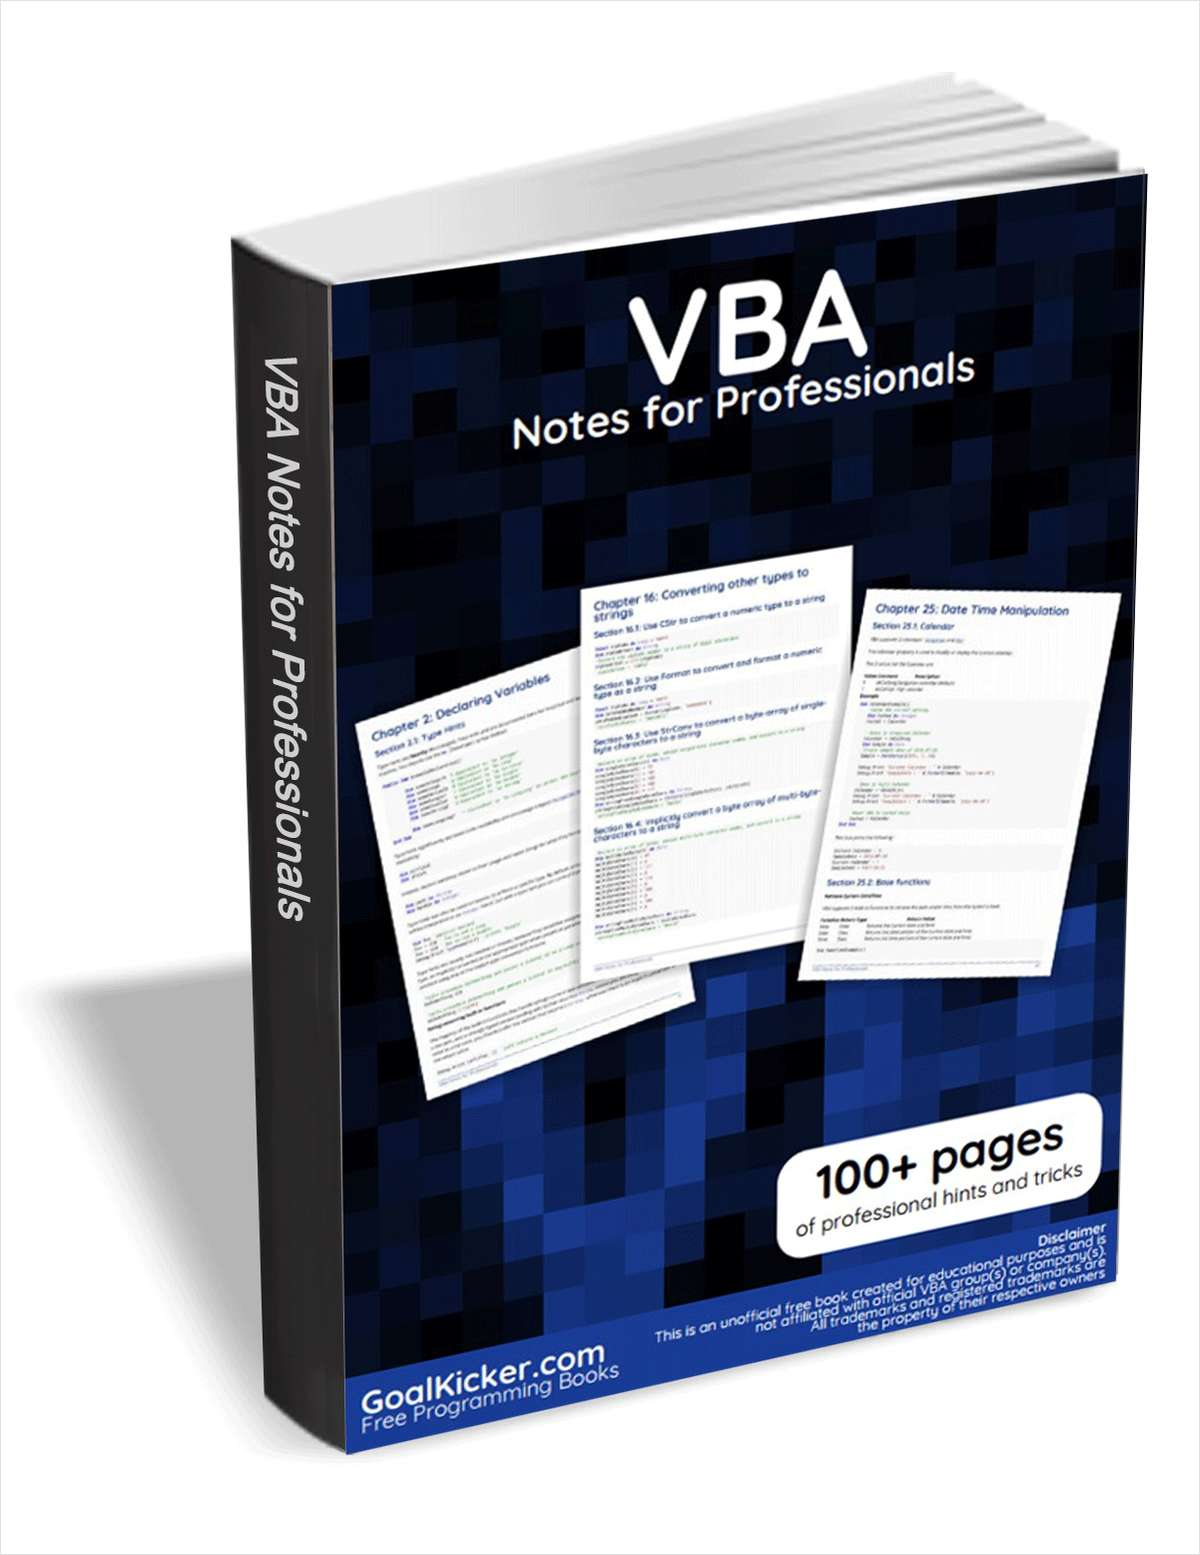 VBA Notes for Professionals